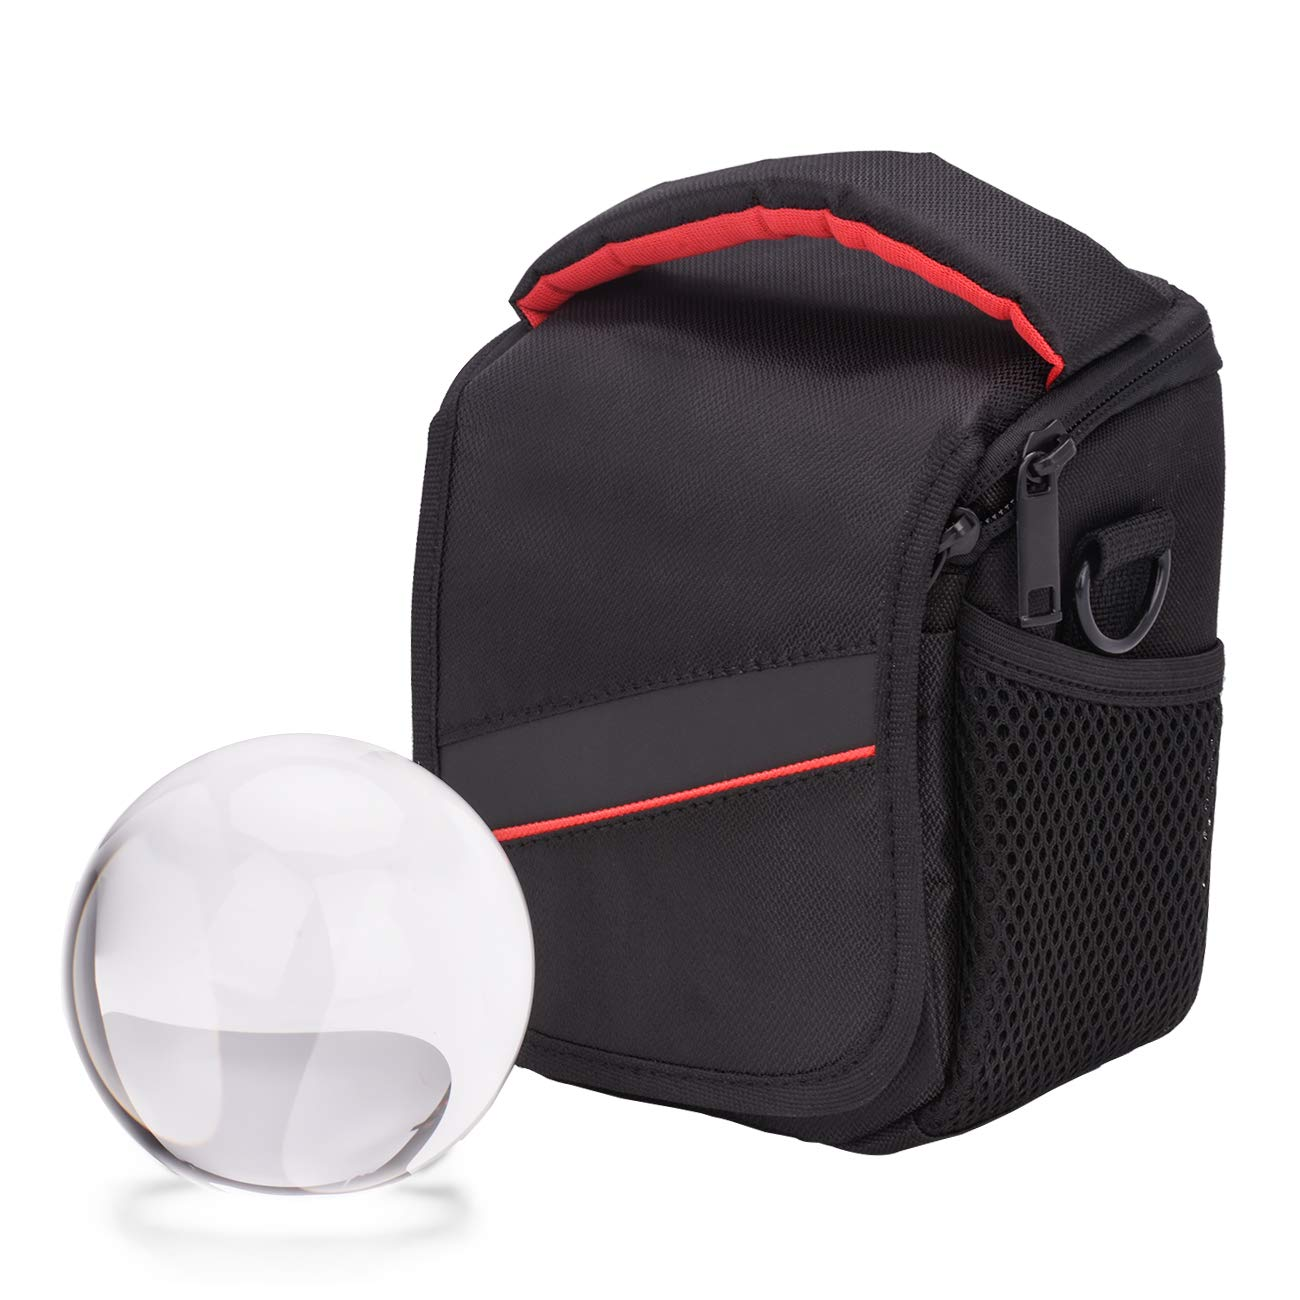 MerryNine Crystal Ball with Ball Case Bag Set, K9 Crystal Photography Ball, Including Microfiber Pouch and Ball Manual, Perfect Photography Accessories (90mm/3.54'')